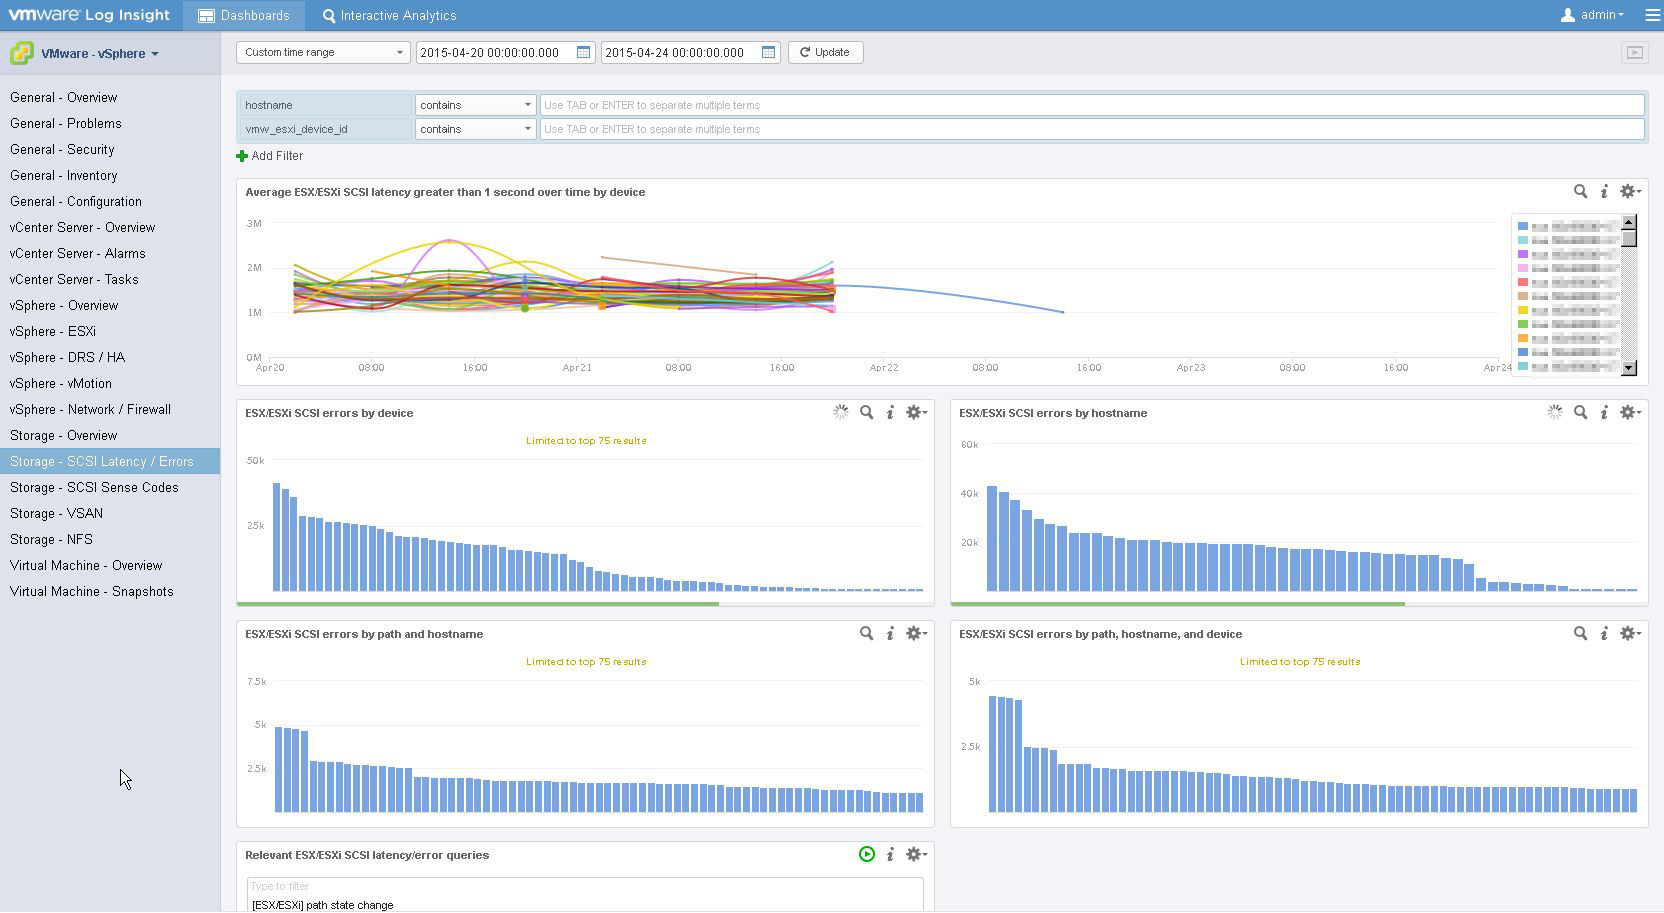 Troubleshooting Storage Problems with Log Insight and vROps